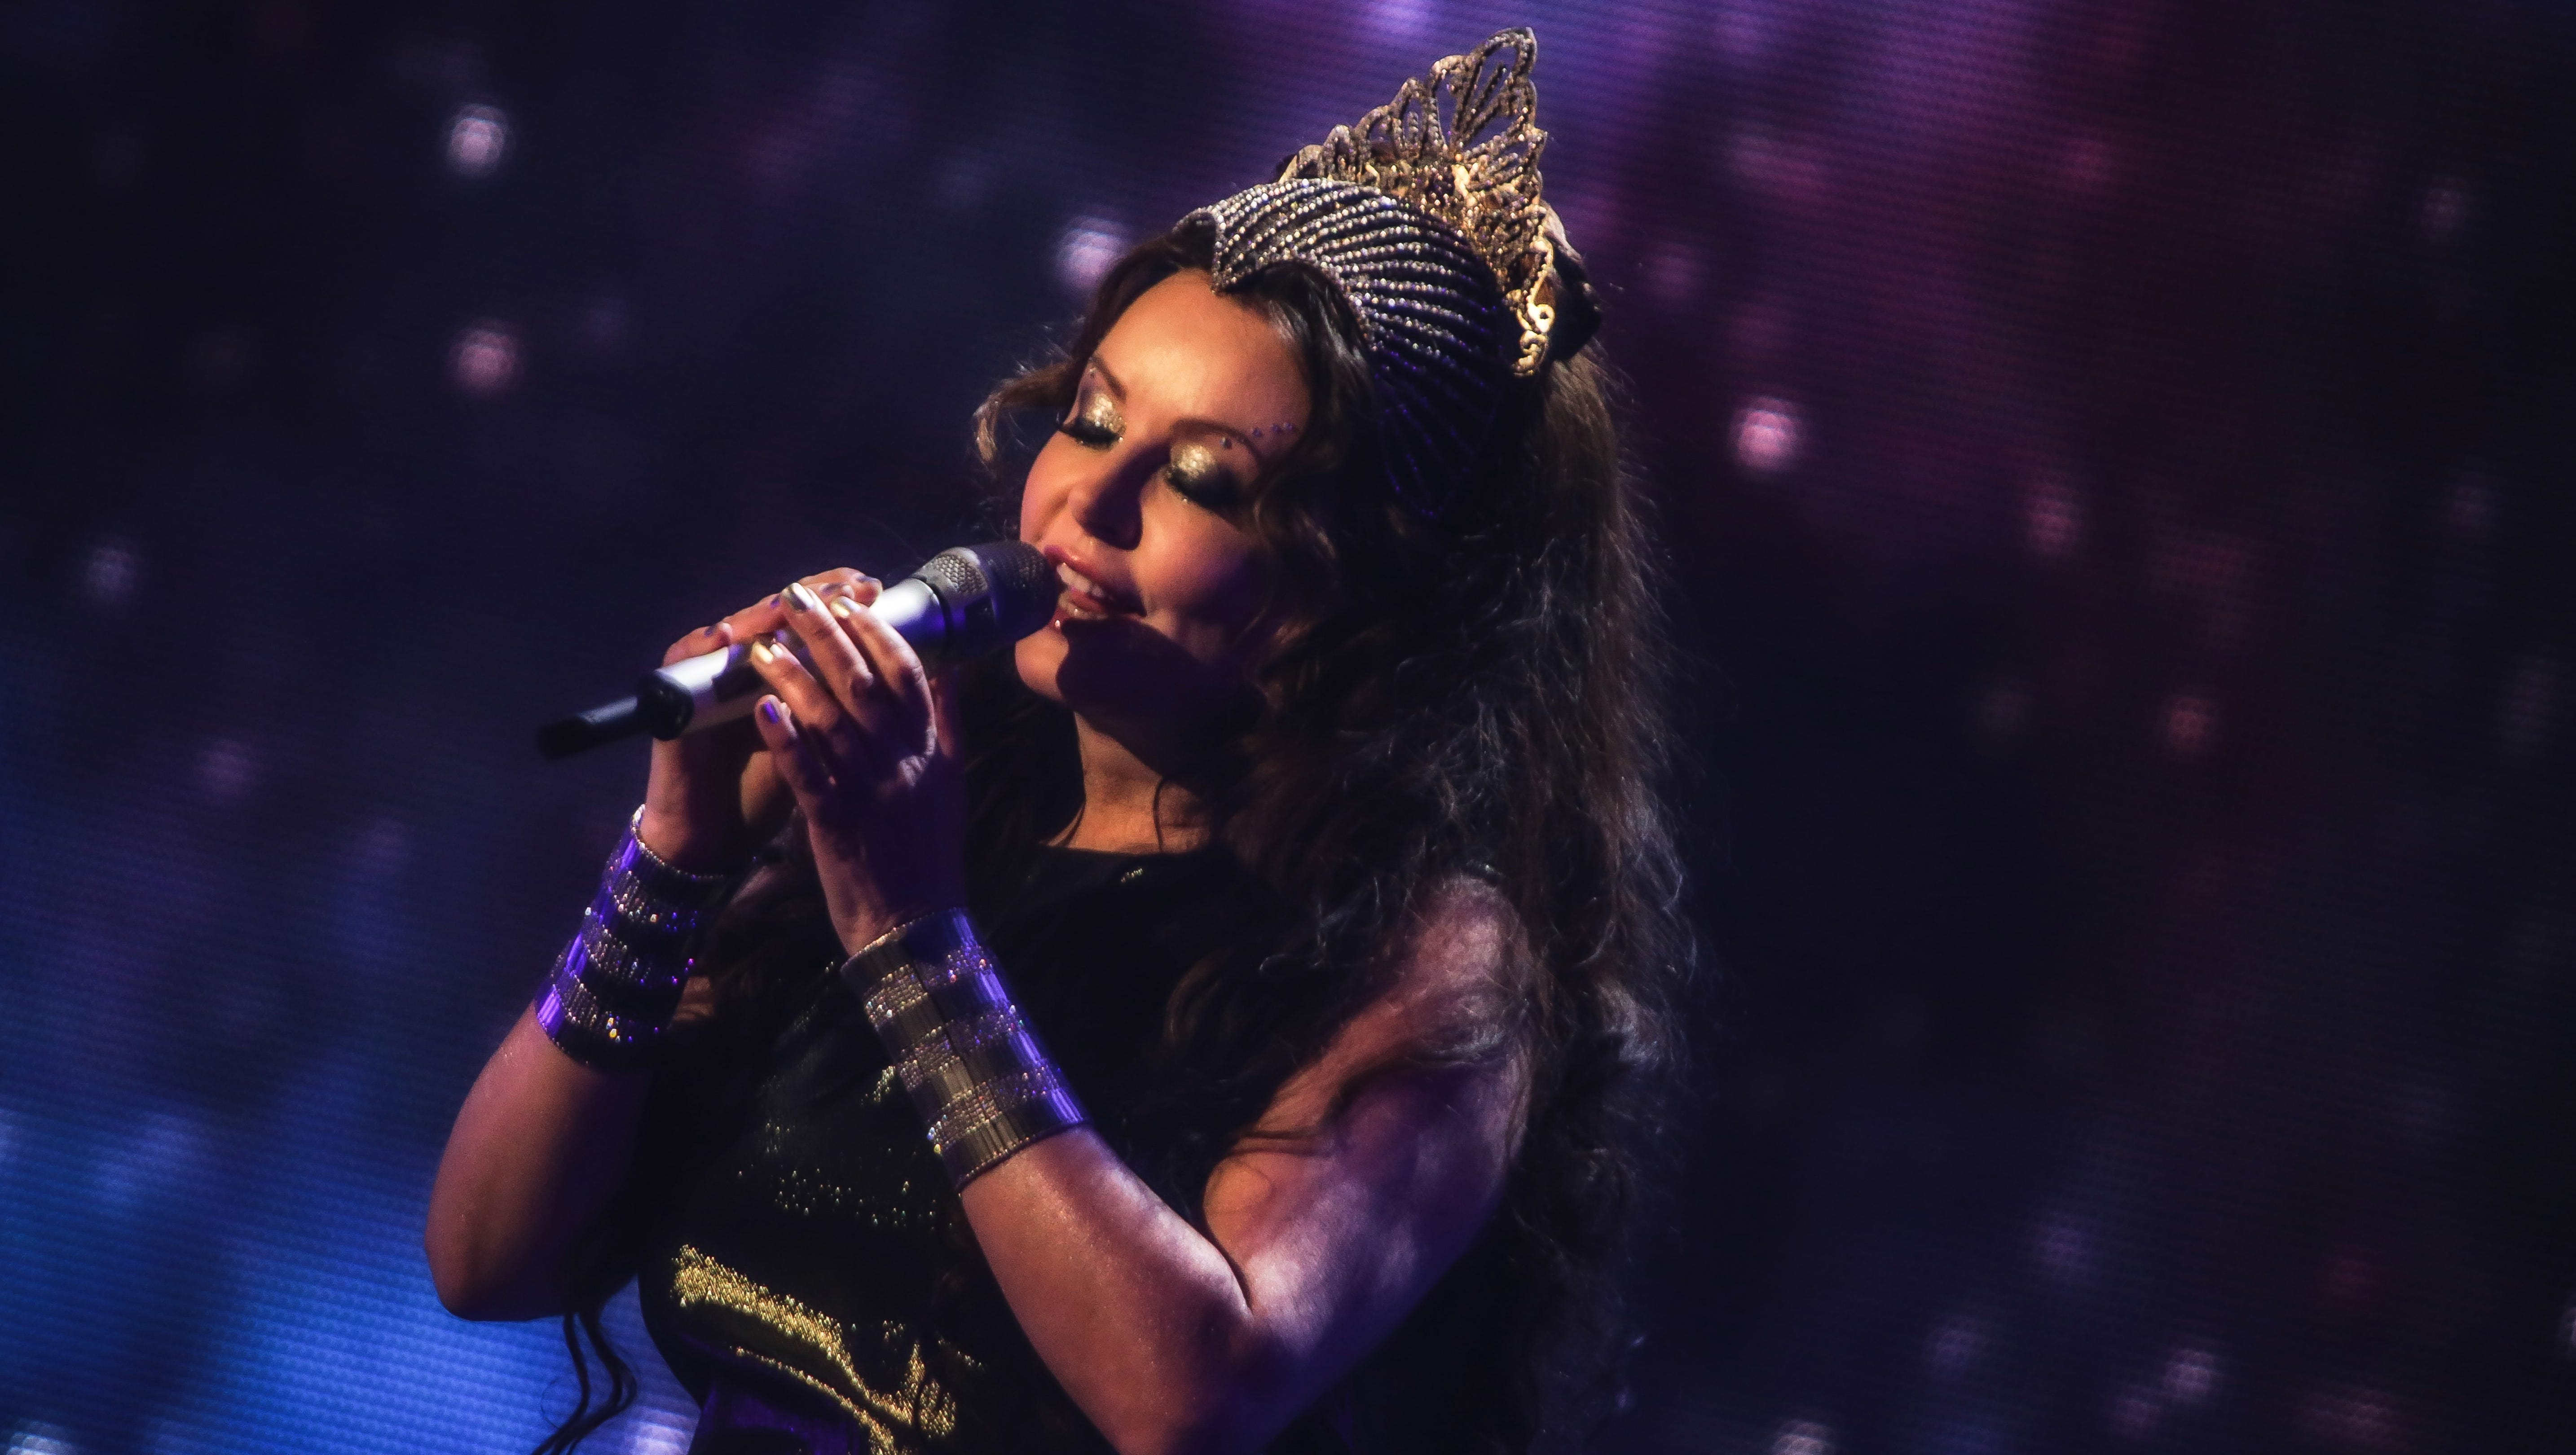 Brightman spent the summer touring Asia in support of 'Dreamchaser.' It was her first new release in five years.